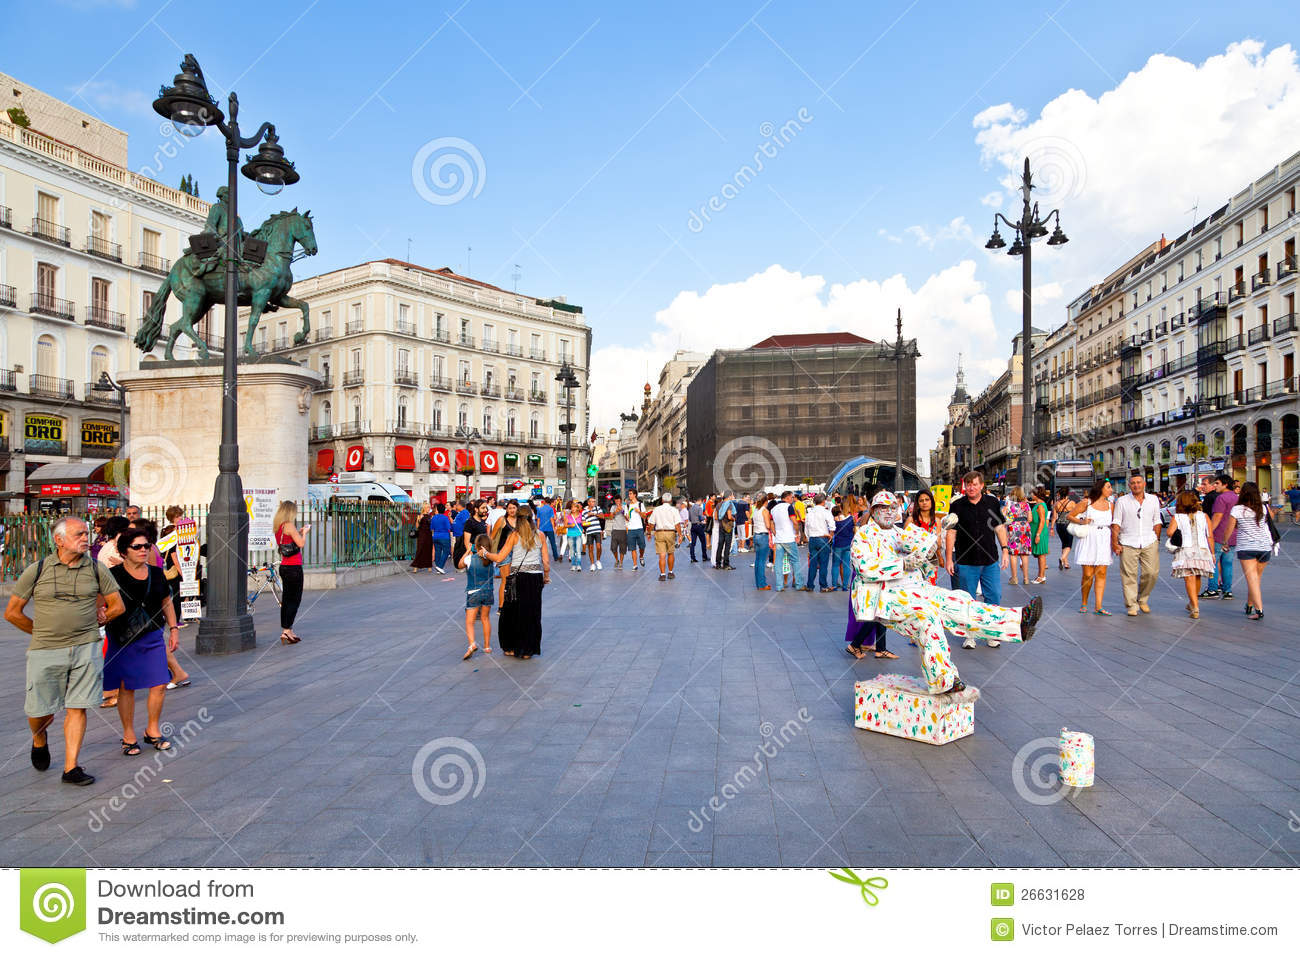 MADRID, SPAIN - 8 SEPTEMBER: Puerta del Sol, Madrid, one of the famous ...